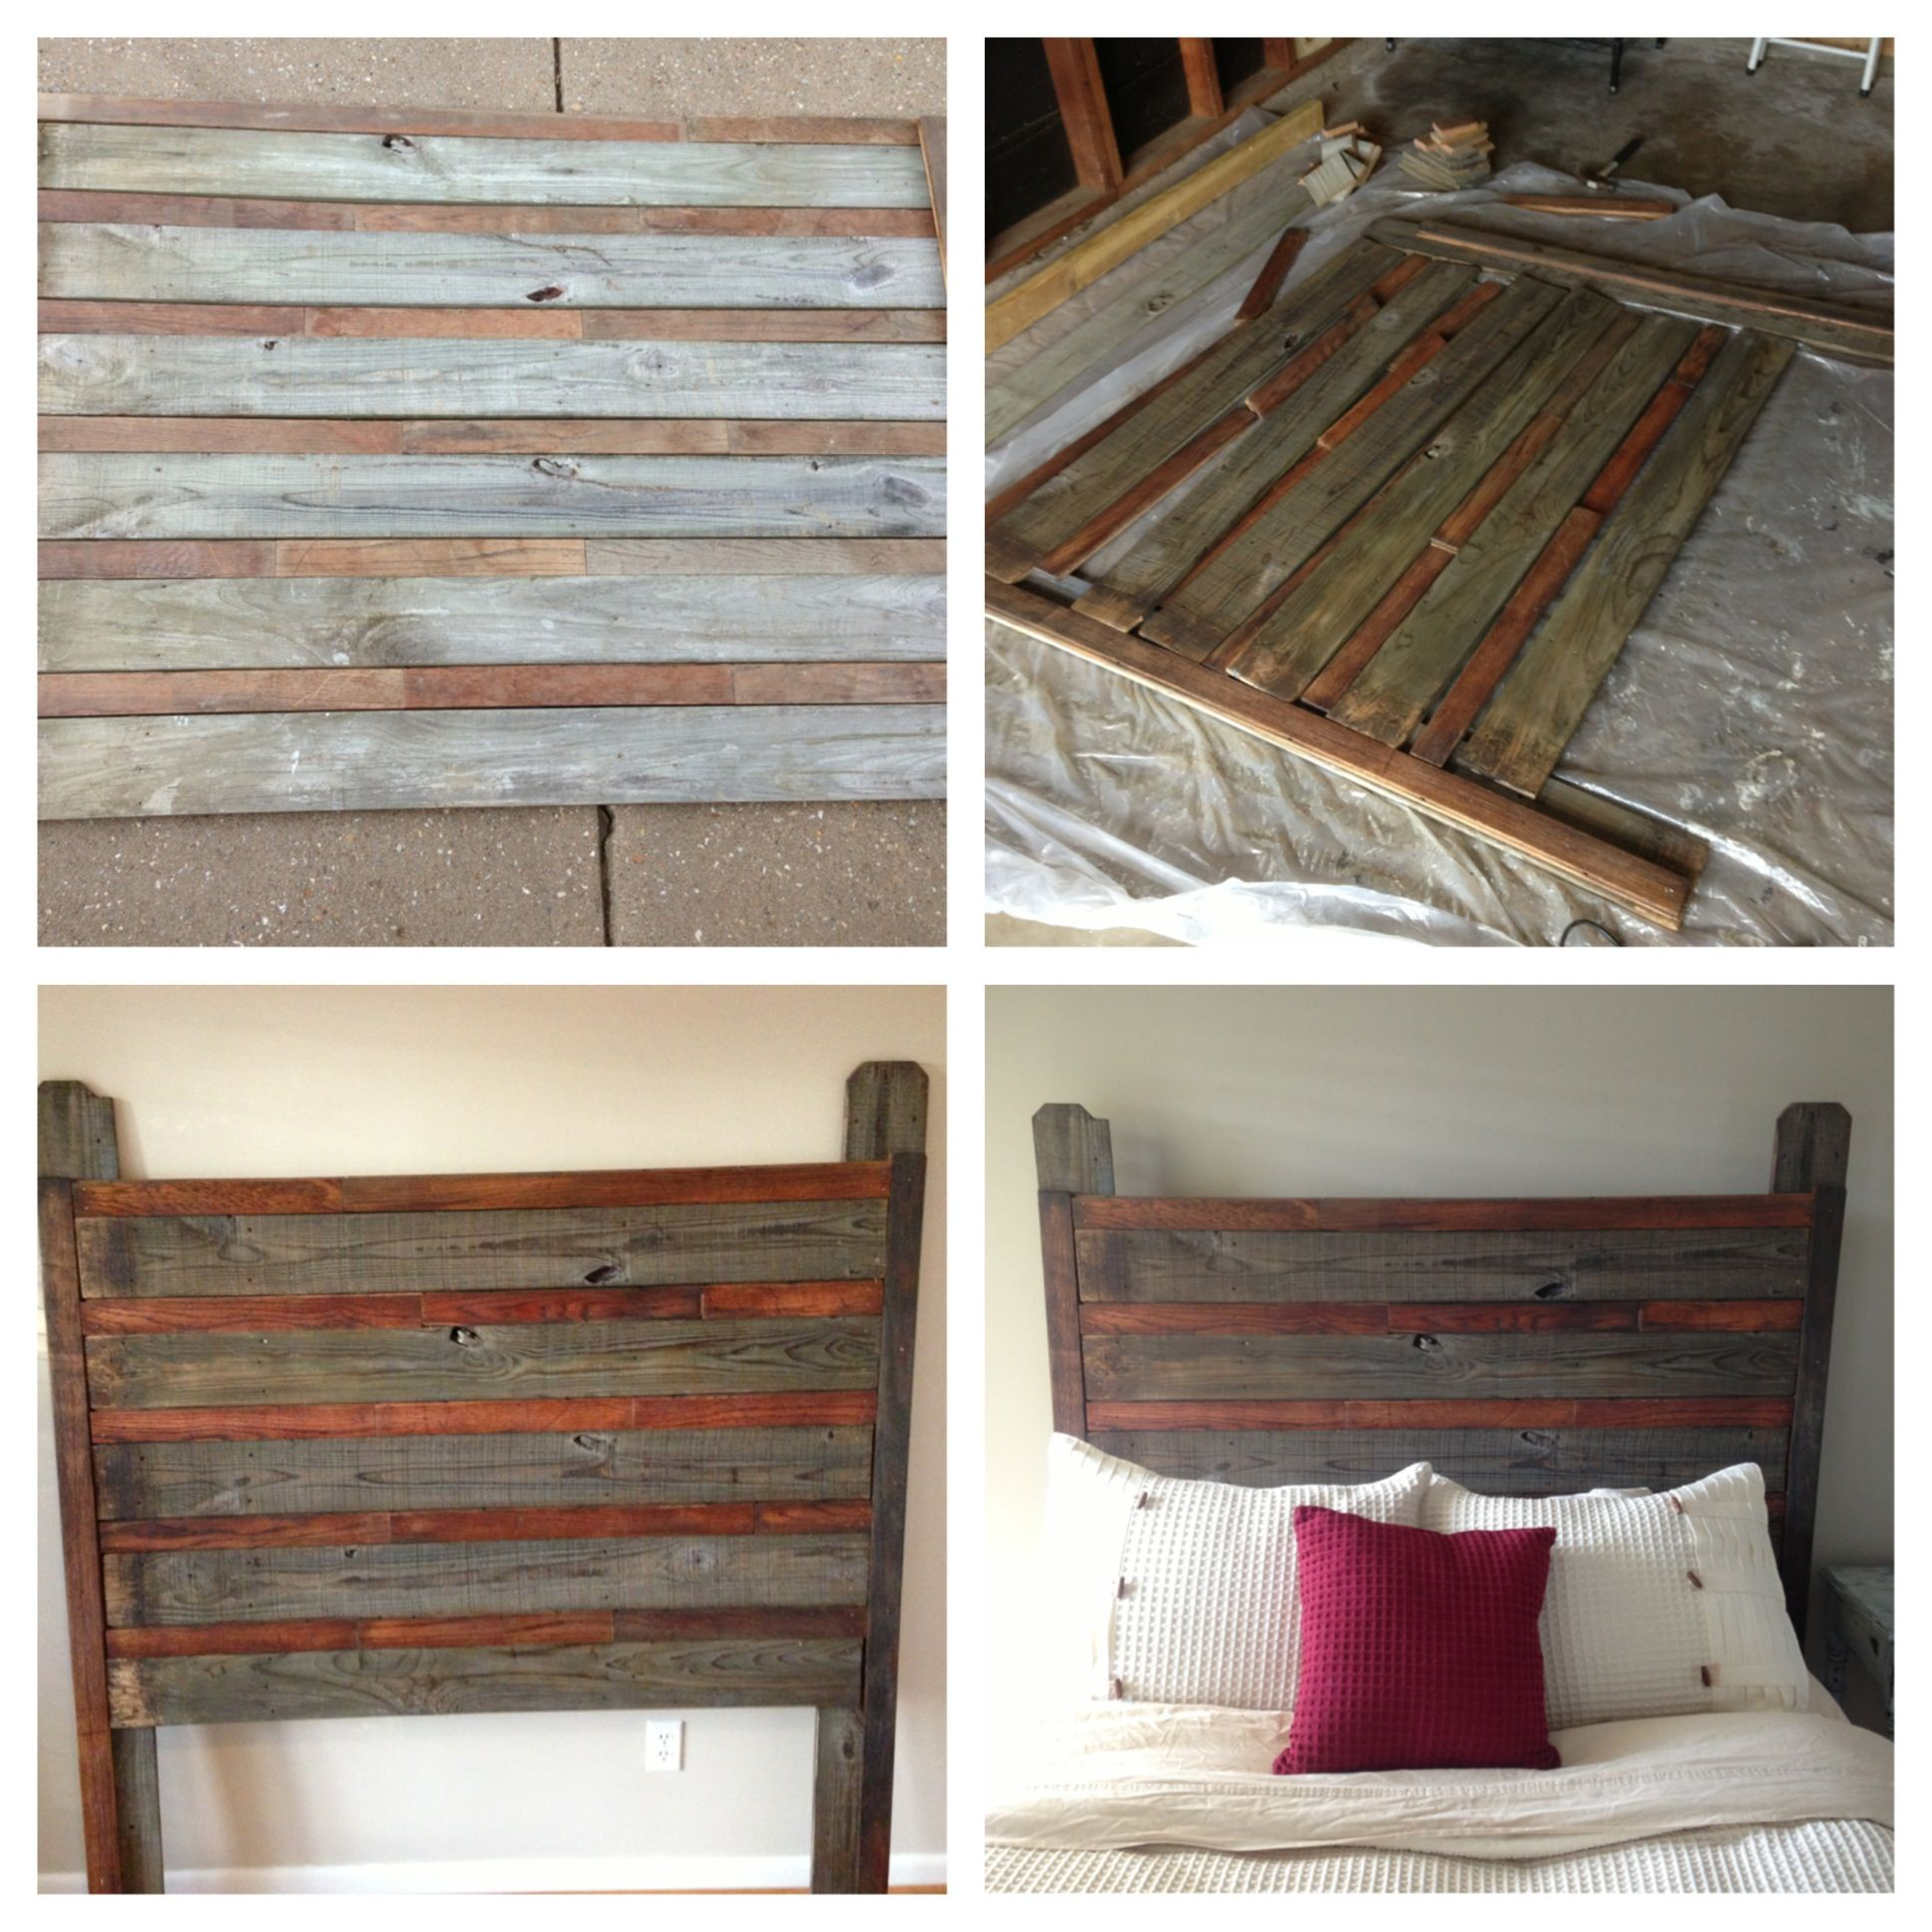 Queen headboard i made from old tongue and groove oak flooring and diy headboards queen headboard i made from old tongue and groove oak flooring and pine fence stain solutioingenieria Gallery